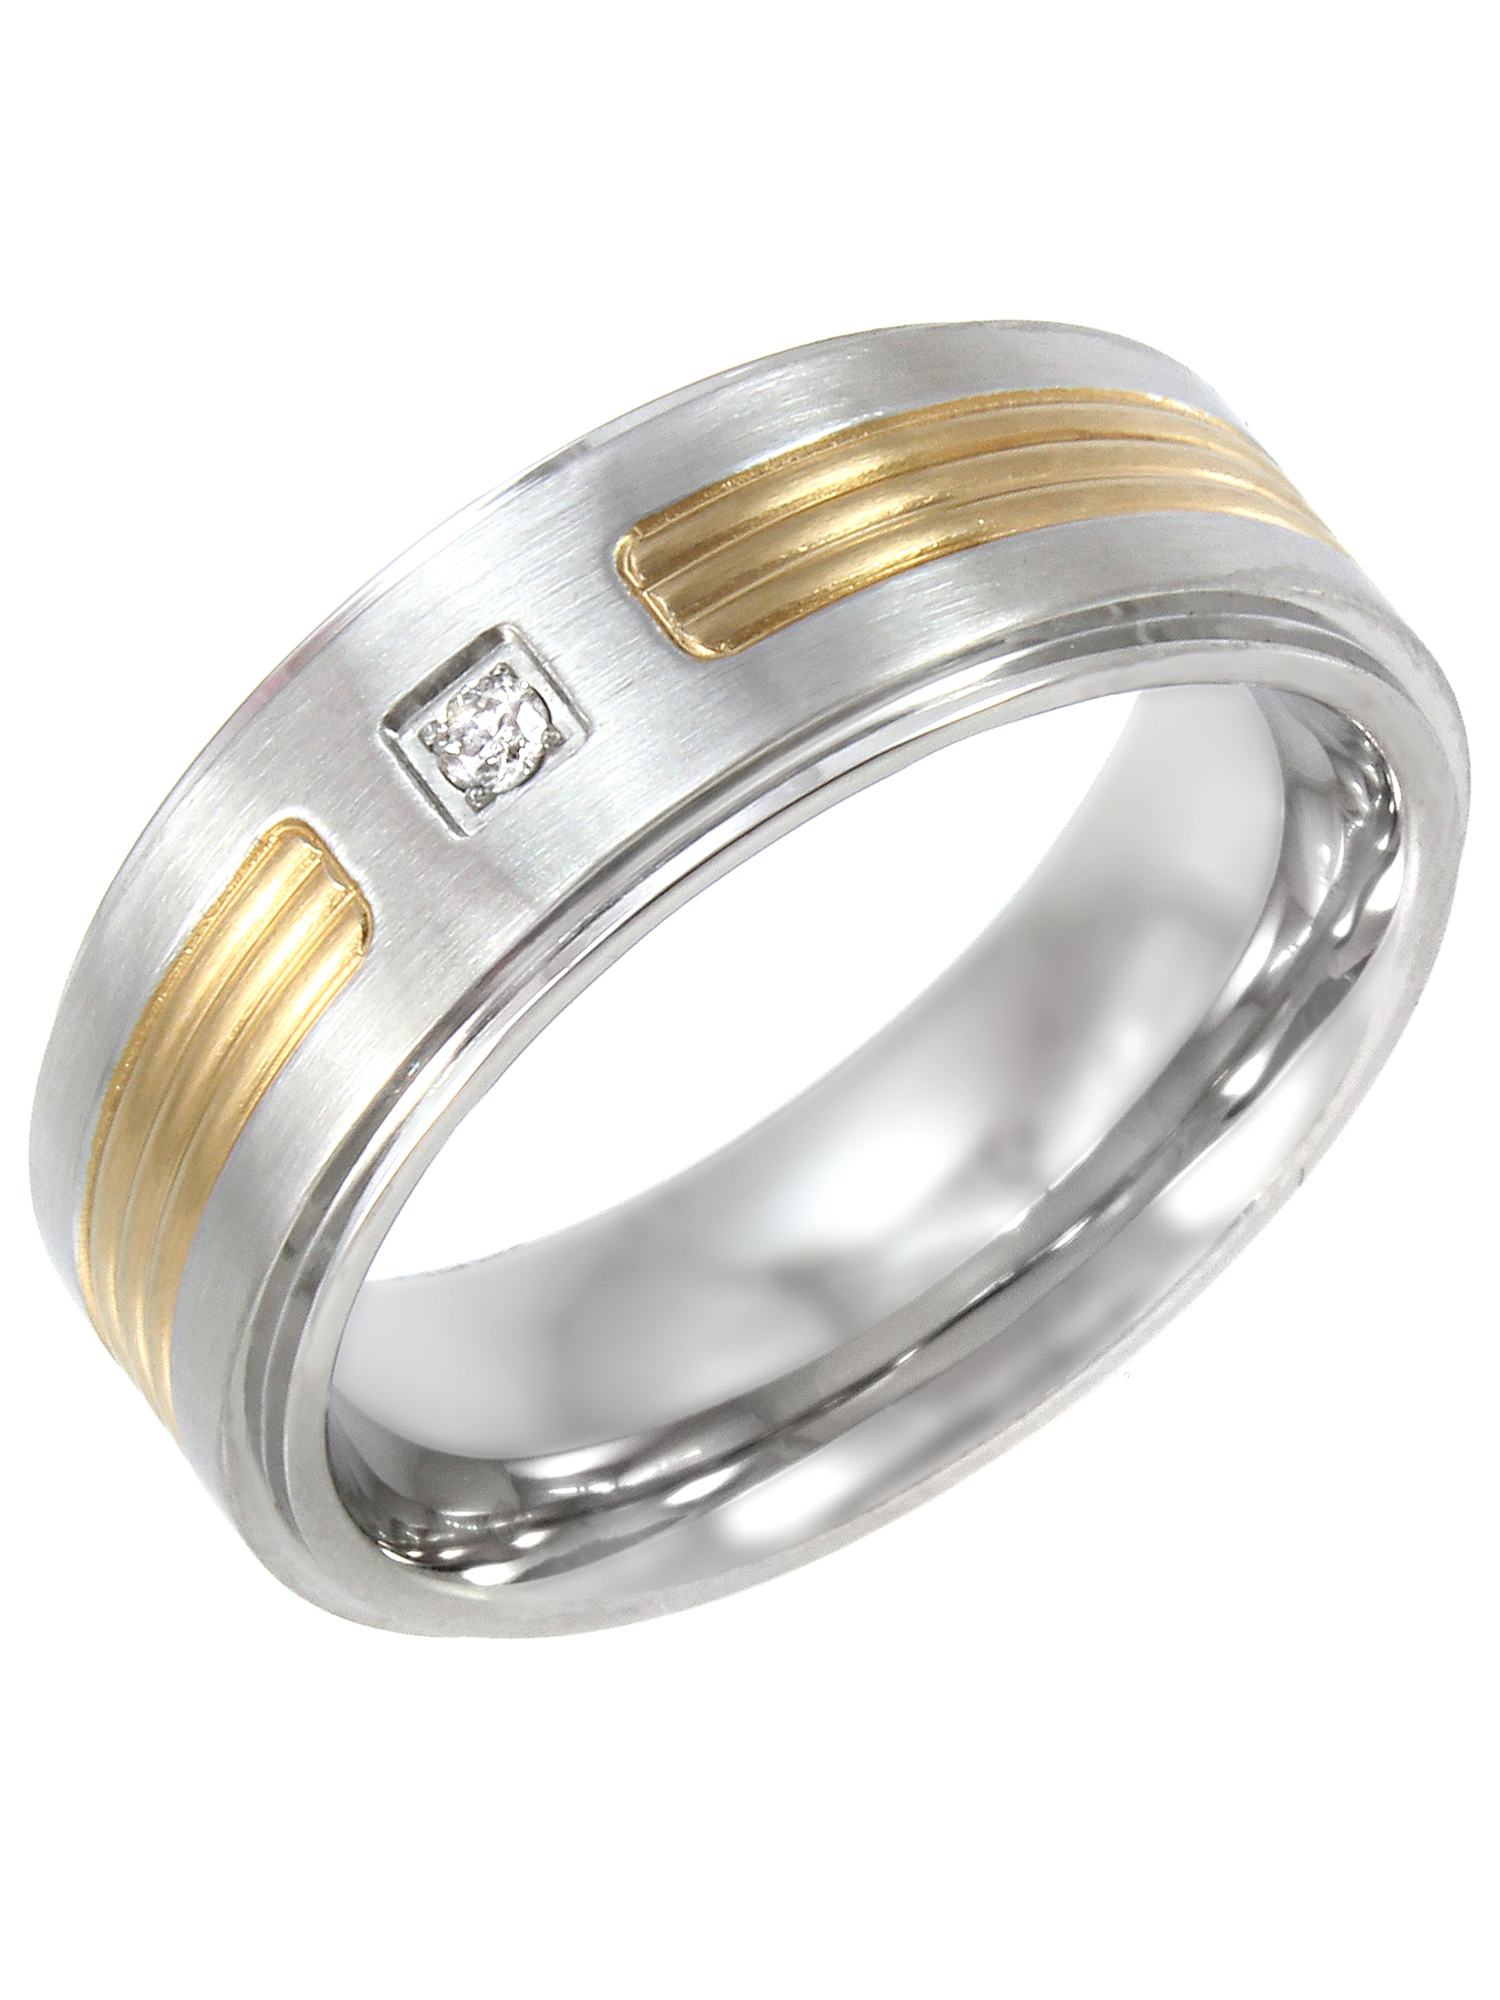 Men's Stainless Steel 8MM Diamond Accent Two-Tone Wedding Band - Mens Ring